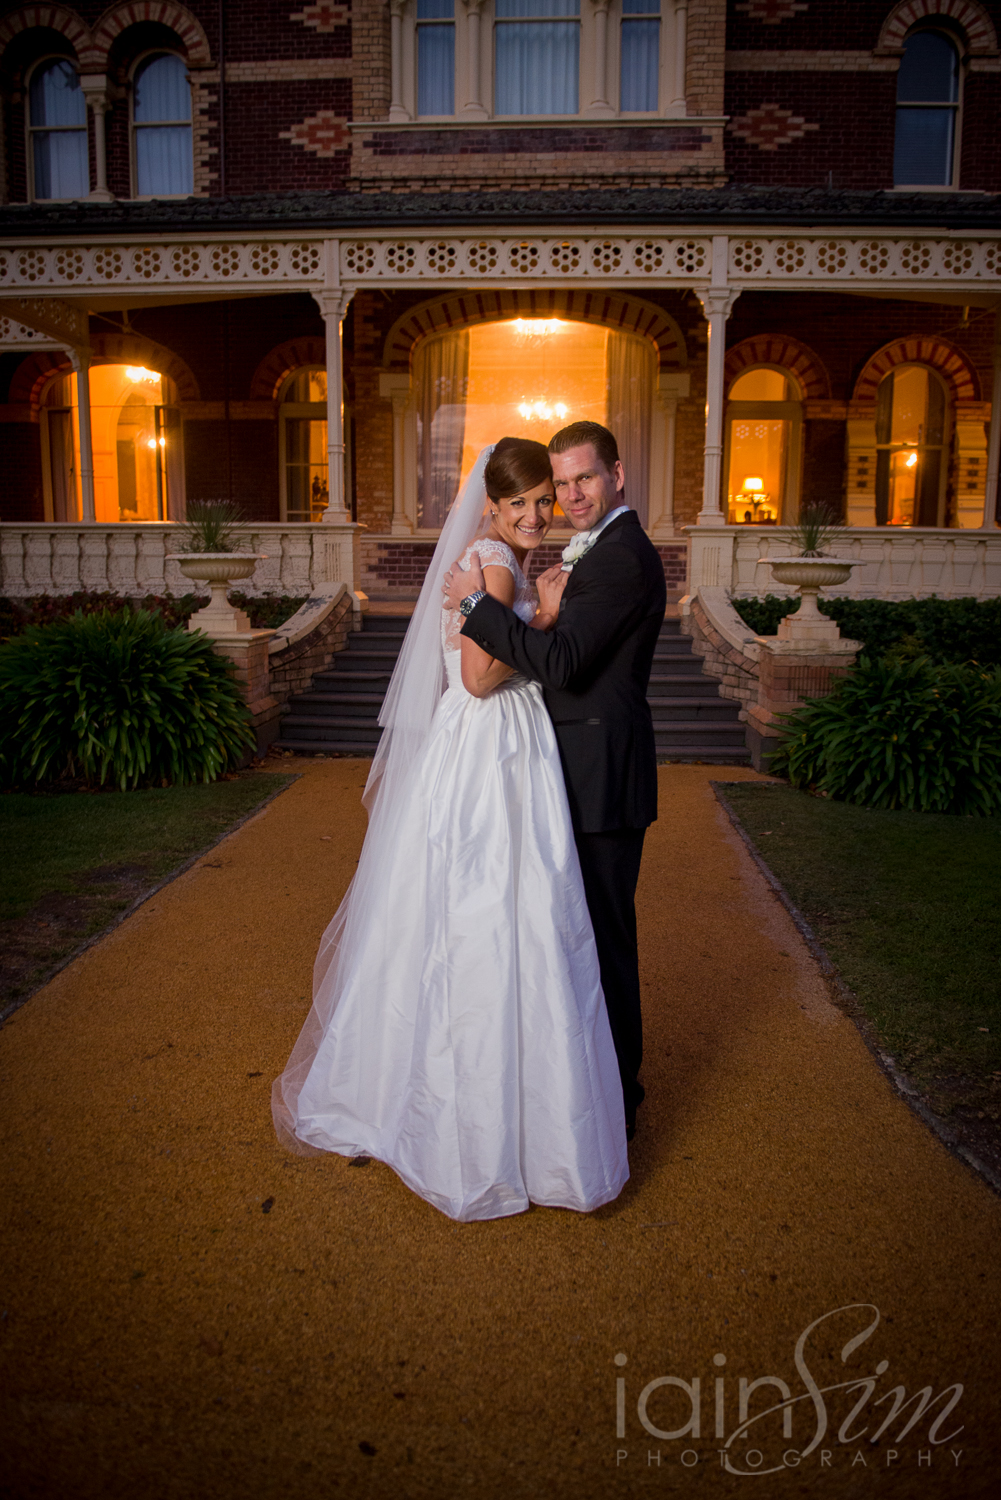 wpid-Katherine-and-Marks-RipponLea-Wedding-by-Iain-Sim-Photography_035.jpg